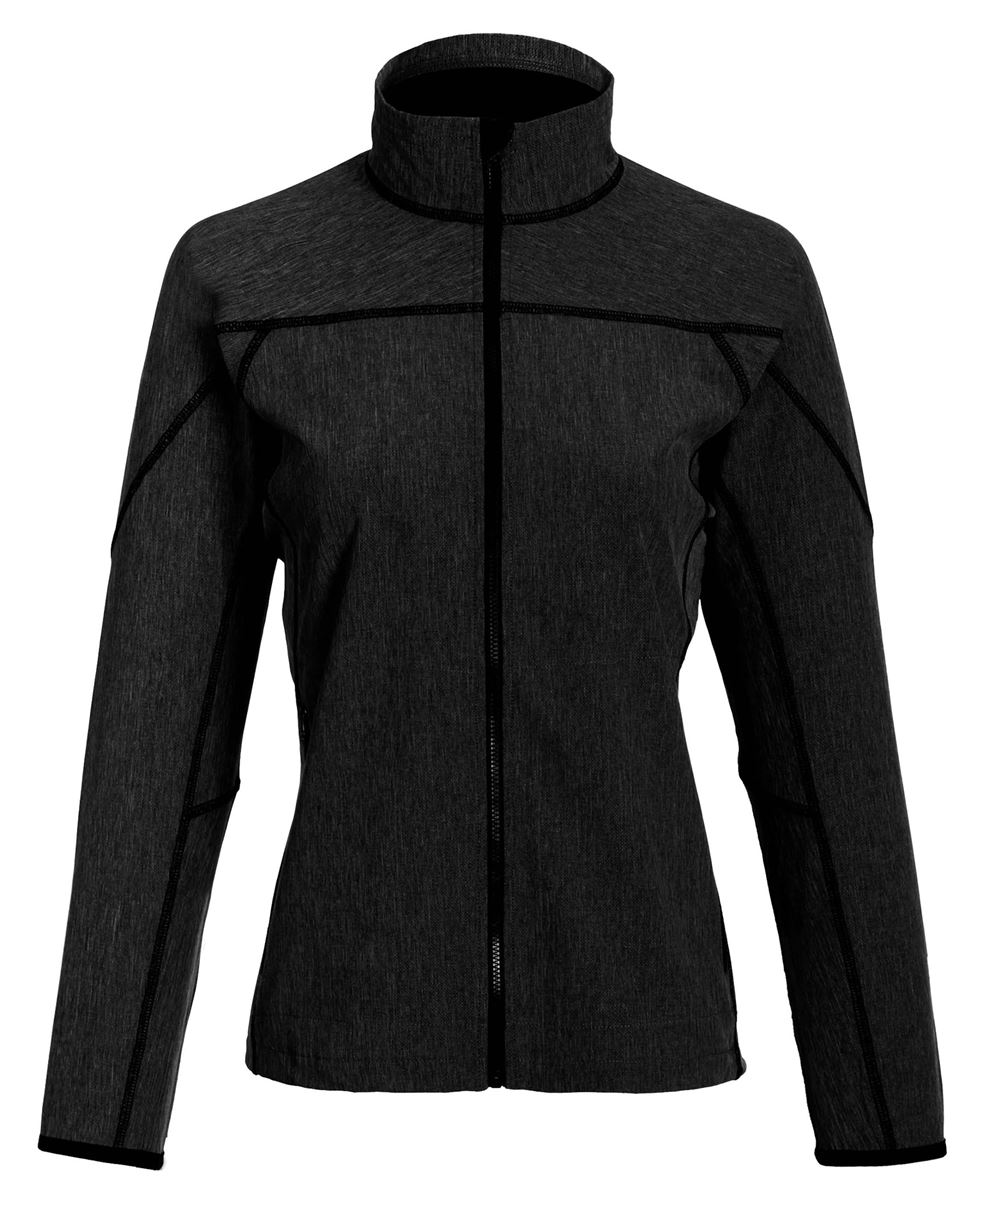 Landway 9470 - Ladies Sonic Flex Lightweight Soft Shell